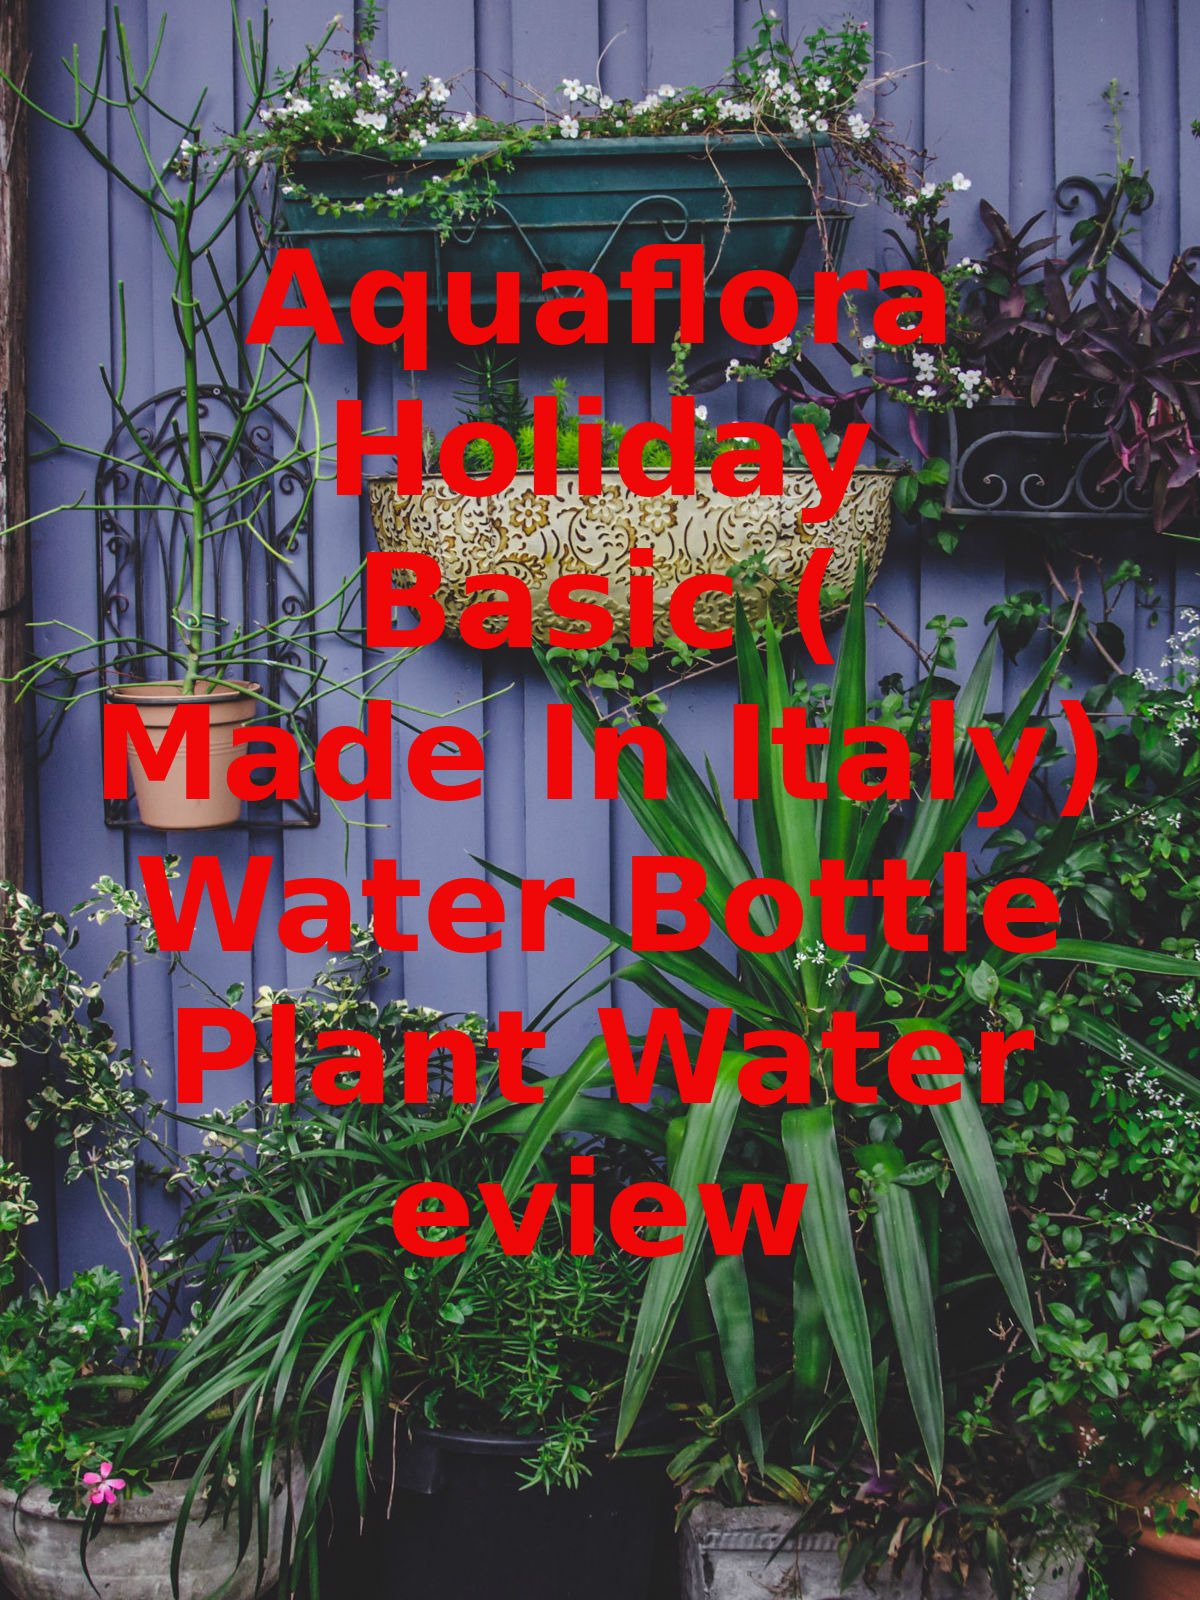 Review: Aquaflora Holiday Basic (Made In Italy) Water Bottle Plant Water Review